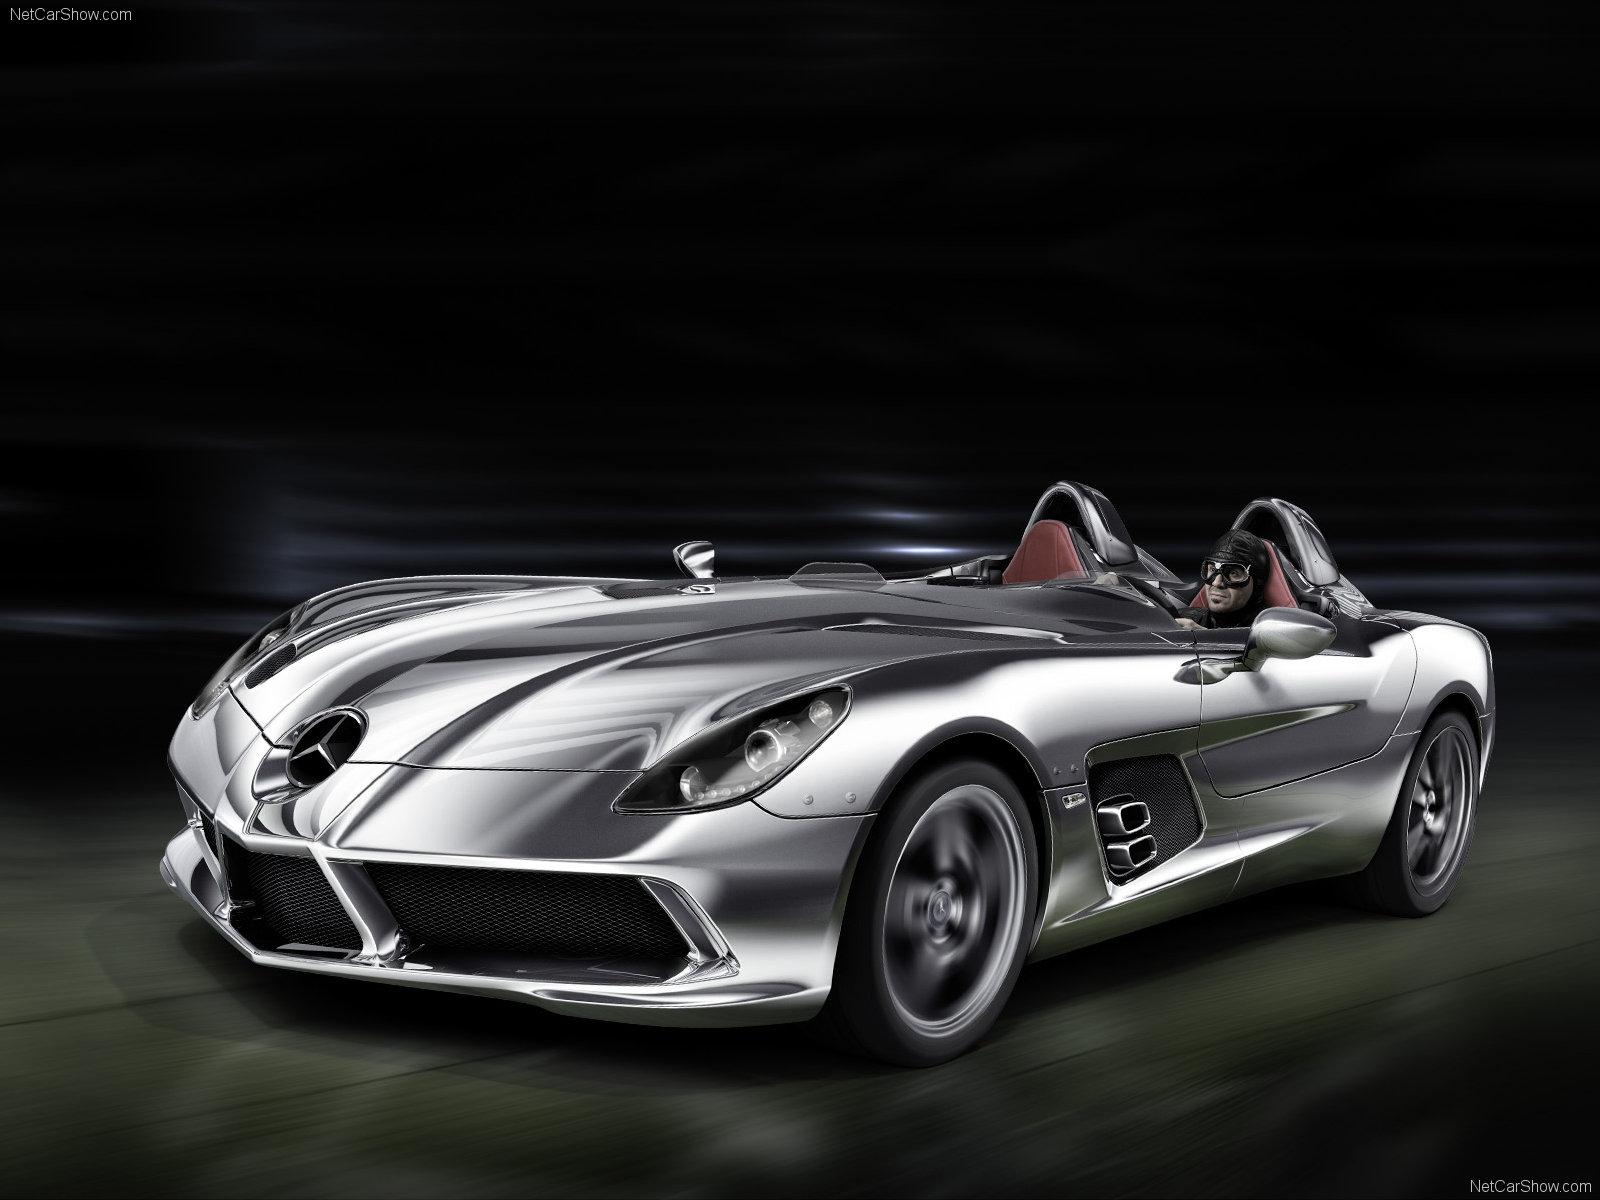 Exceptional Mercedes Benz SLR Stirling Moss